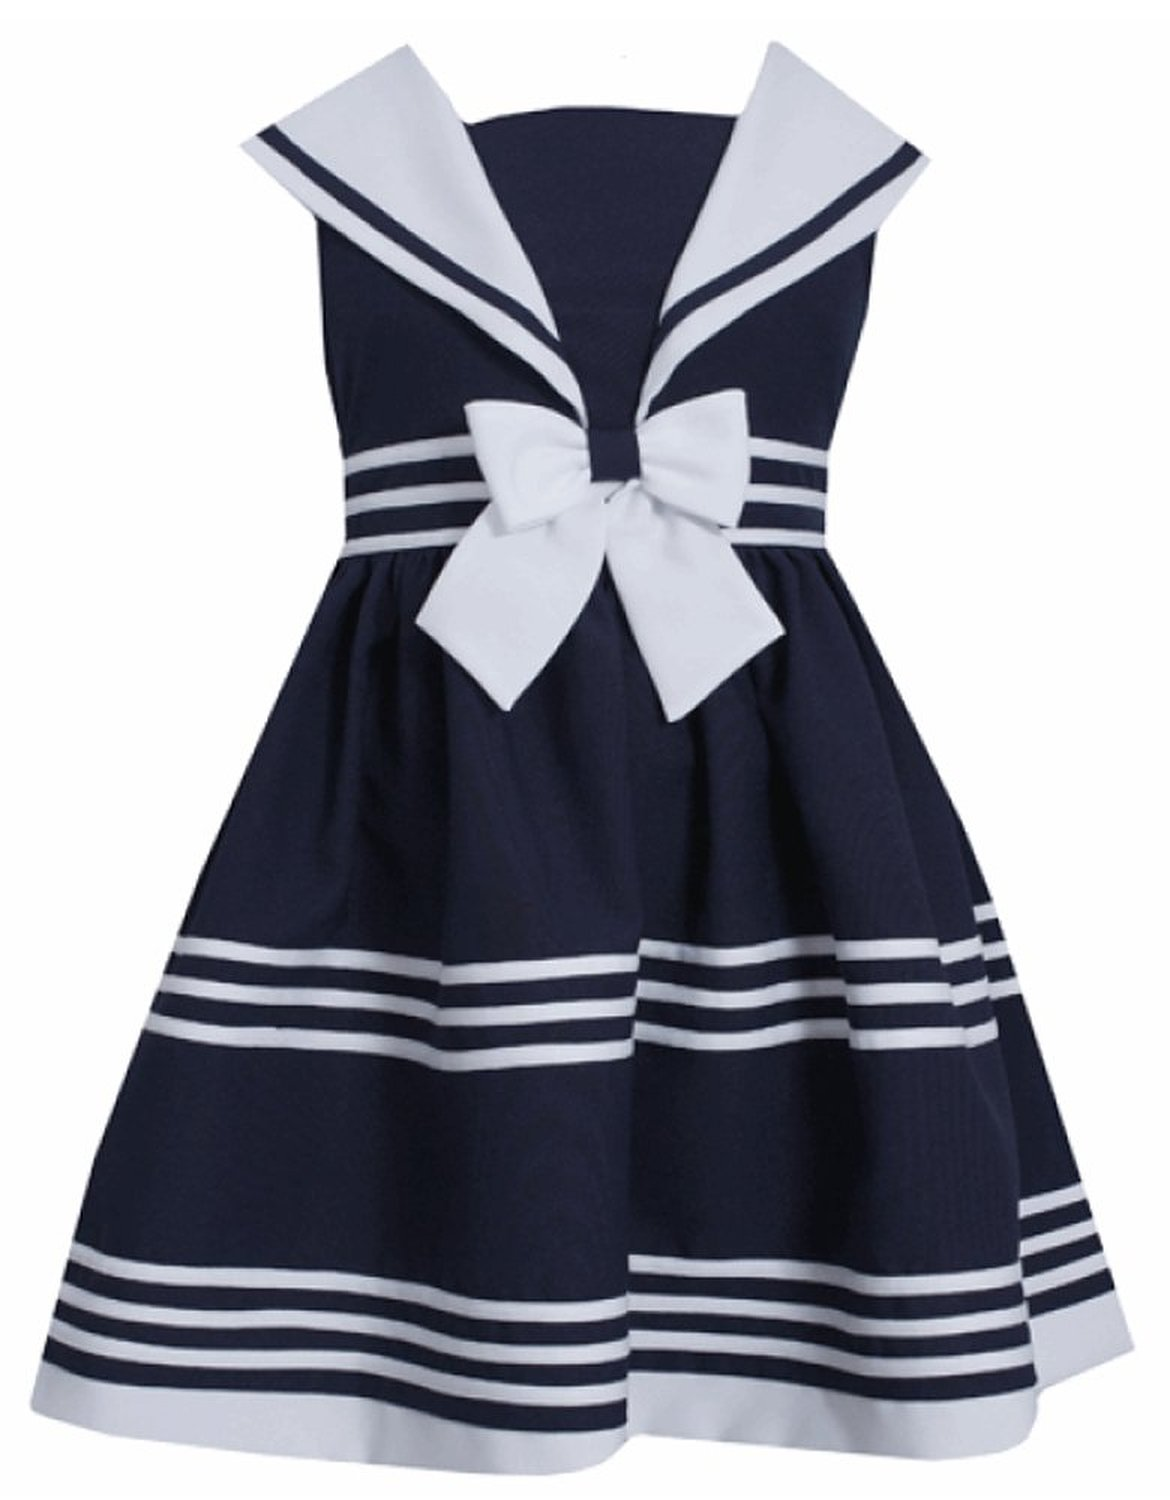 Shop the cutest selection of nautical dresses at ModCloth. Find fab nautical frocks featuring crisp pinstripes and anchor prints.